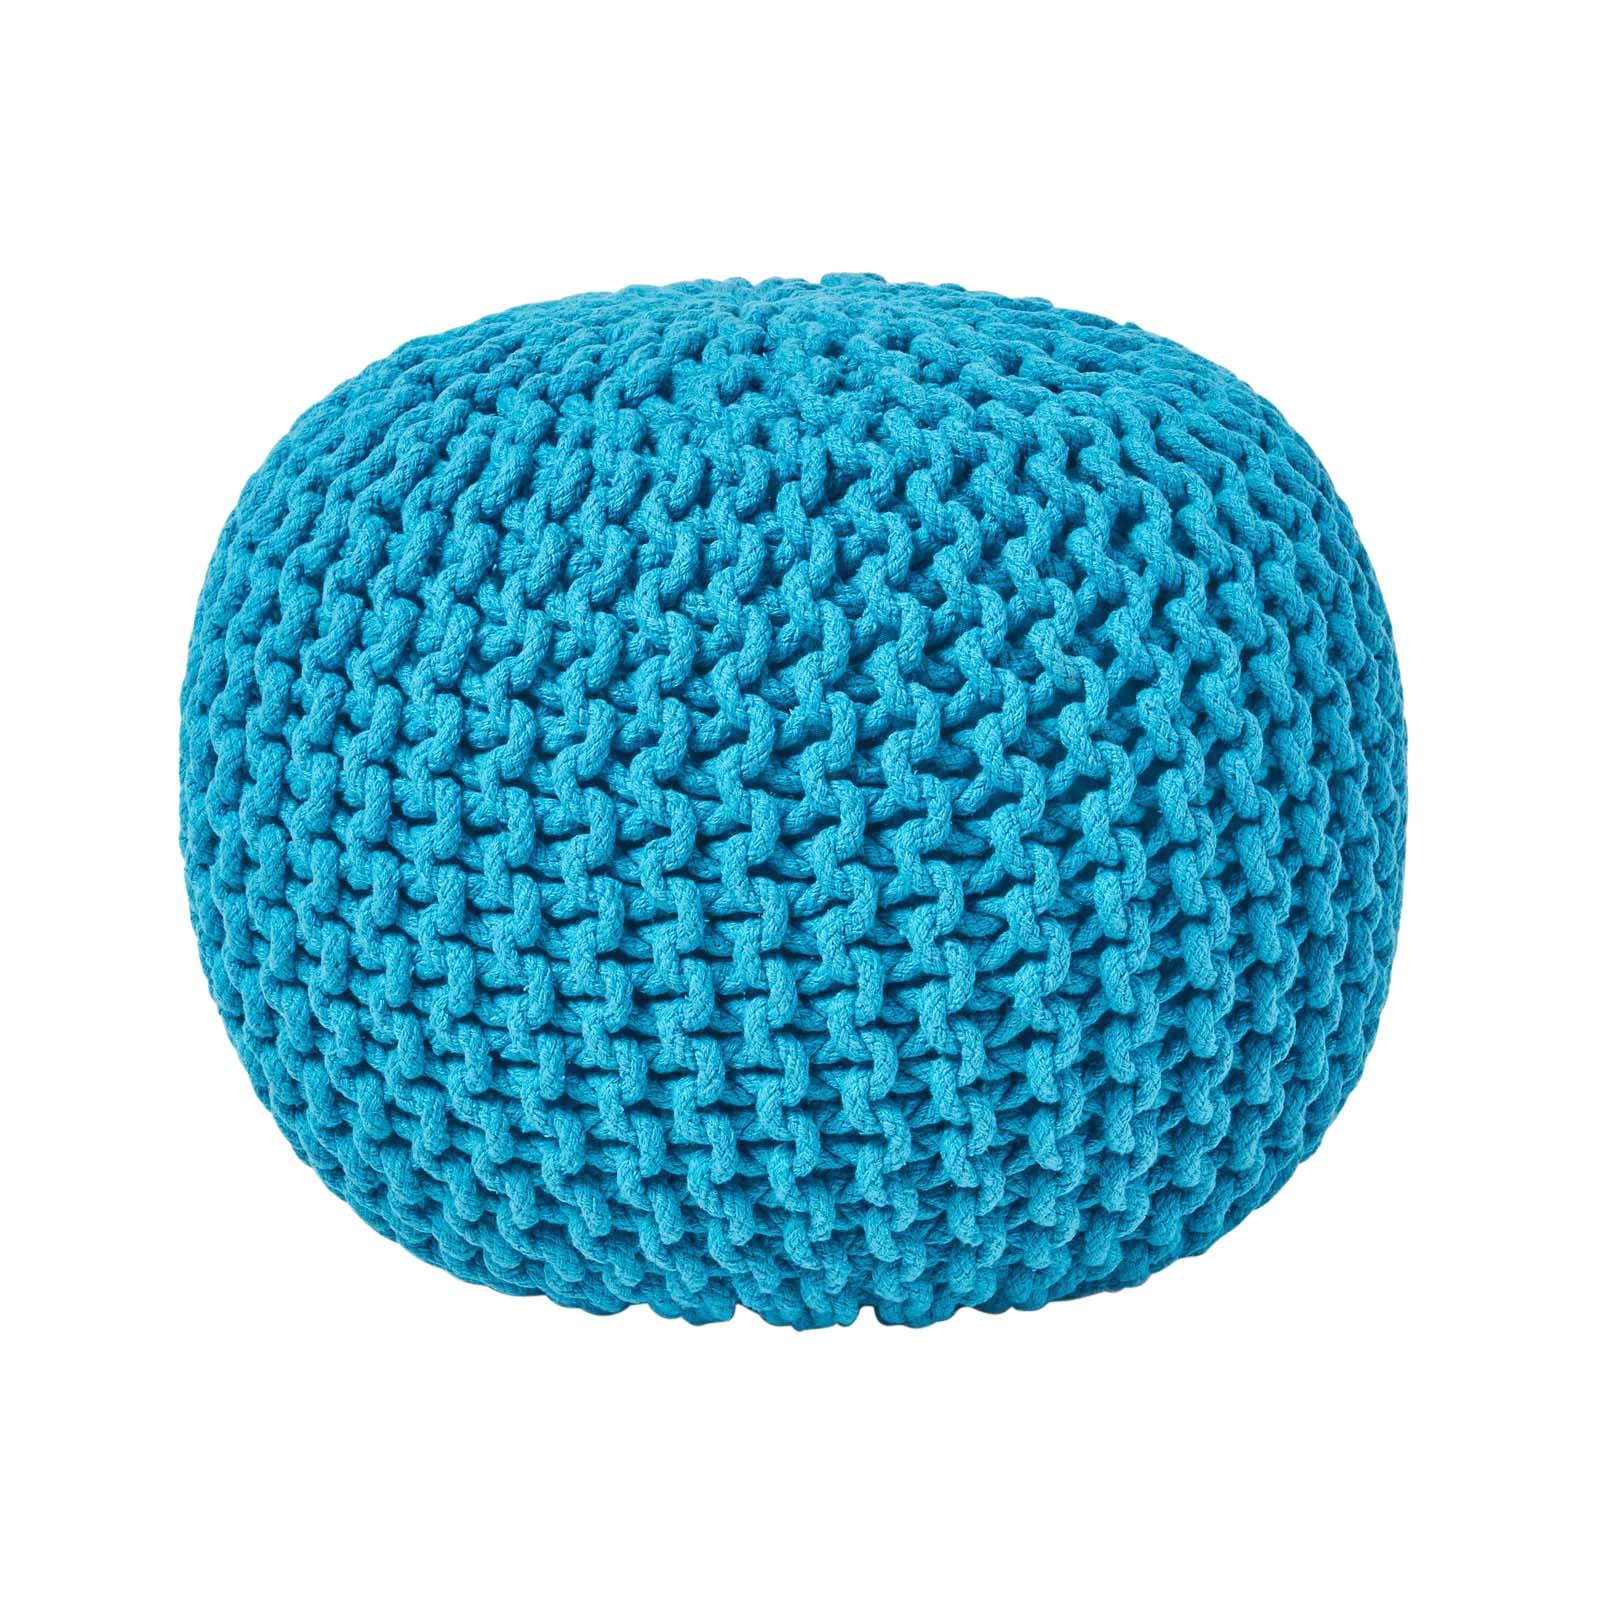 Hand-Knitted-100-Cotton-Pouffes-Round-Sphere-Or-Cube-Square-Chunky-Footstools thumbnail 182